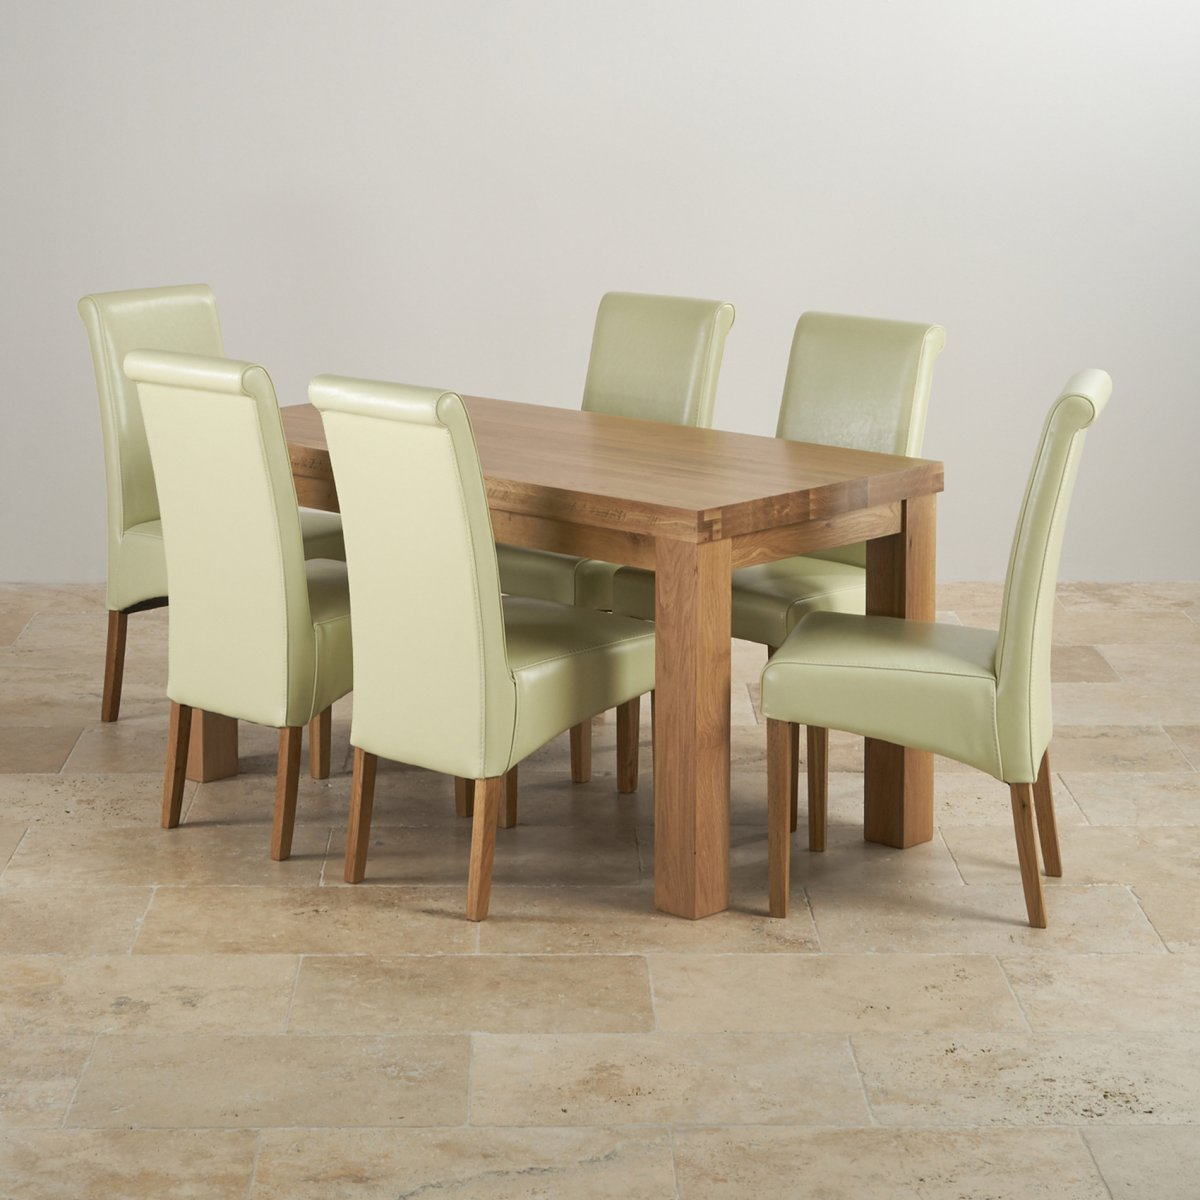 dining table set 6 chairs green velvet chunky in oak 43 cream leather